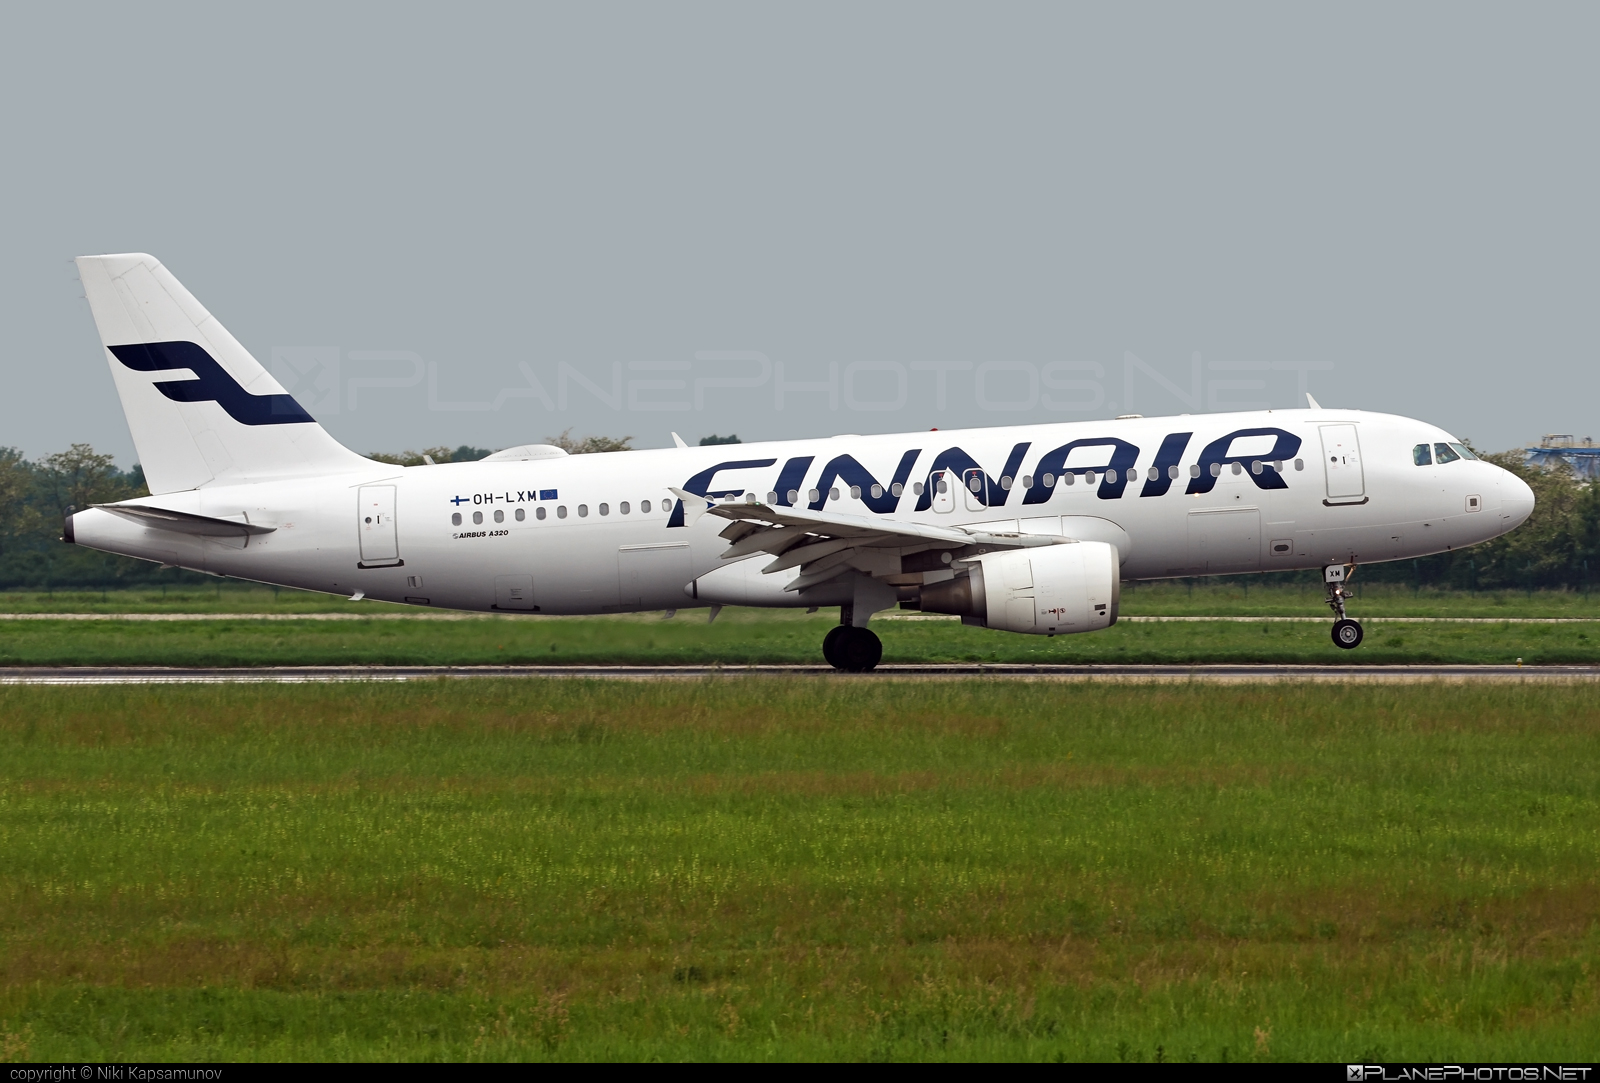 Airbus A320-214 - OH-LXM operated by Finnair #a320 #a320family #airbus #airbus320 #finnair